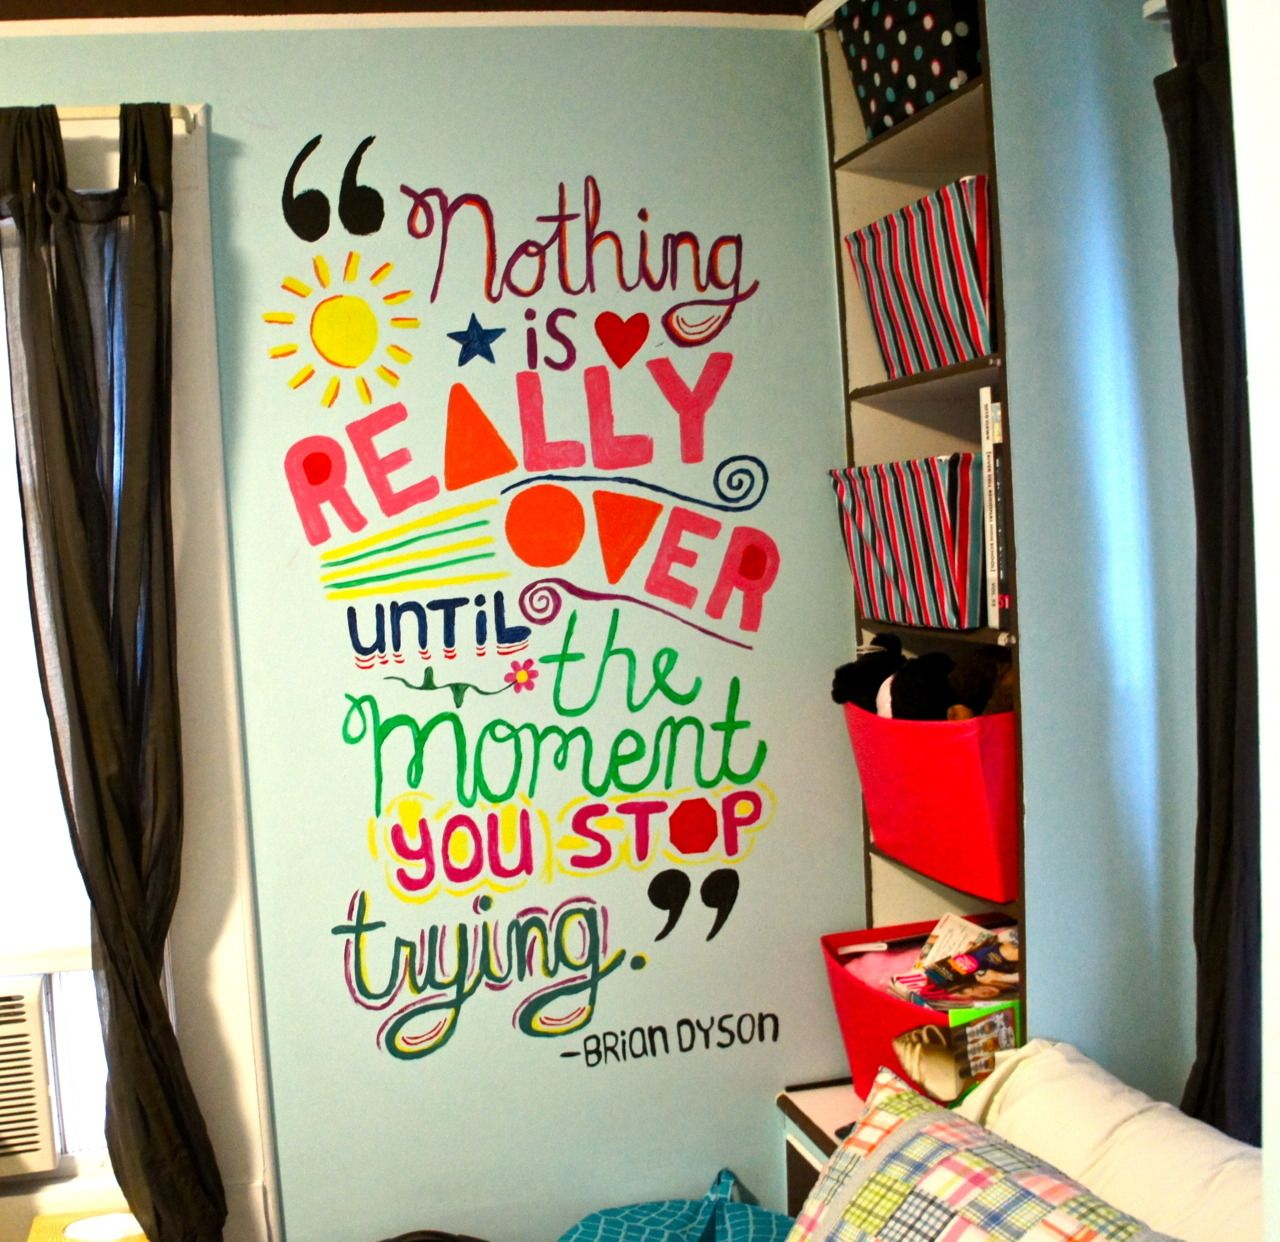 nothing is really over until the moment you stop trying brian inspirational quote wall for a kid room or teenager room